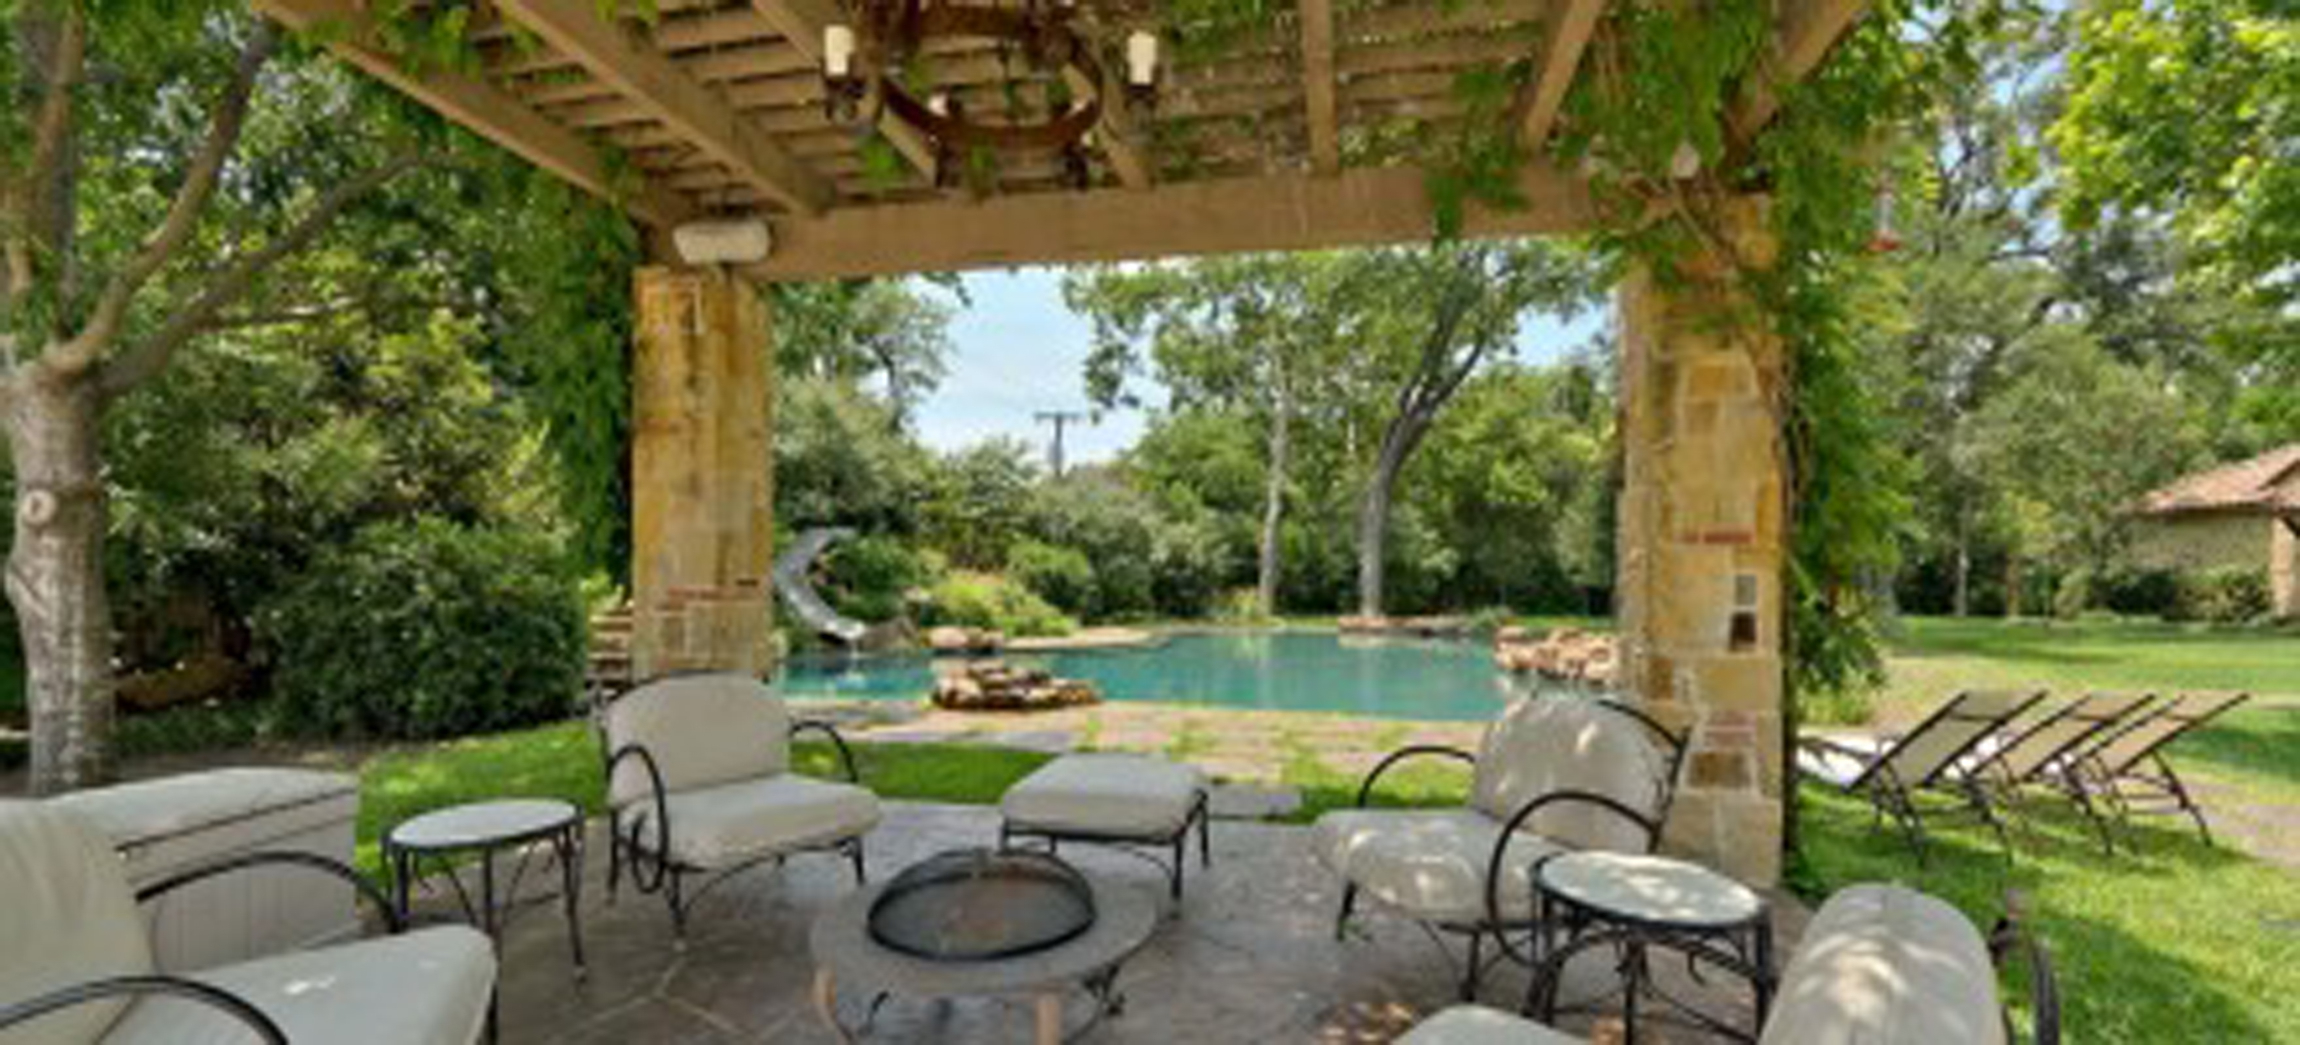 Featured Photo of Patio Furniture For Outdoor Dining And Seating